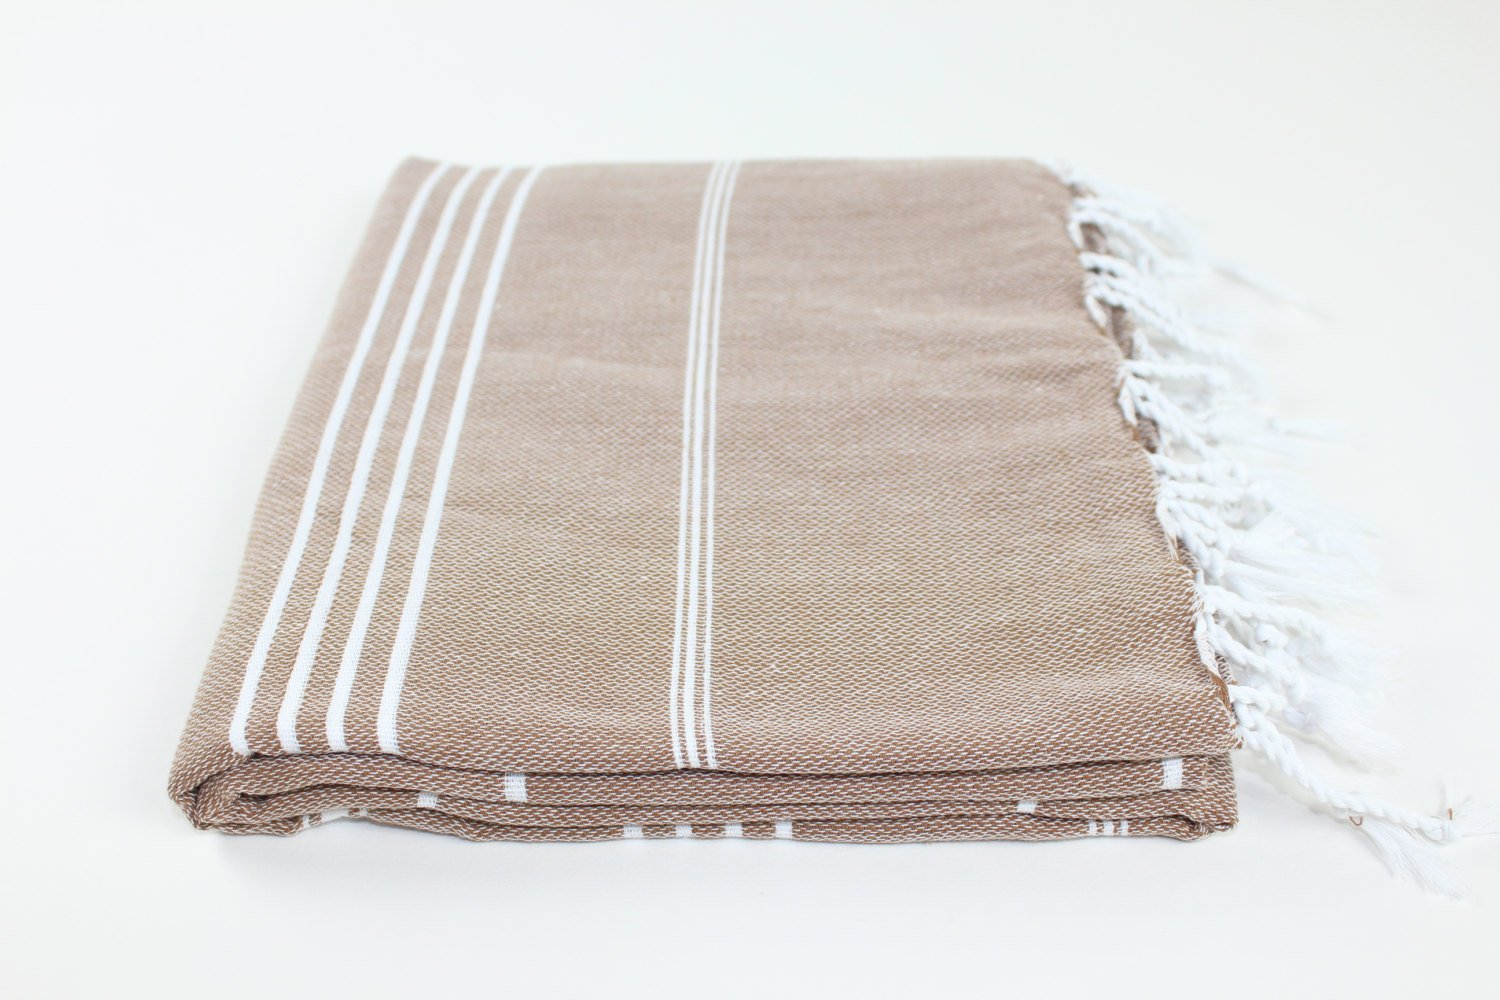 *SALE* Turkish Towel MADE IN TURKEY *LOW PRICE HIGH QUALITY* Fouta Peshtemal *FREE SHIPPING* Striped Beach Bath Spa Yoga Hammam *UNIQUE GIFT IDEA* Gym Pool Towel Wrap *100% CUSTOMER SATISFACTION* Pareo Sarong AUTHENTIC GENUINE 100% Turkish Cotton LONGER LI